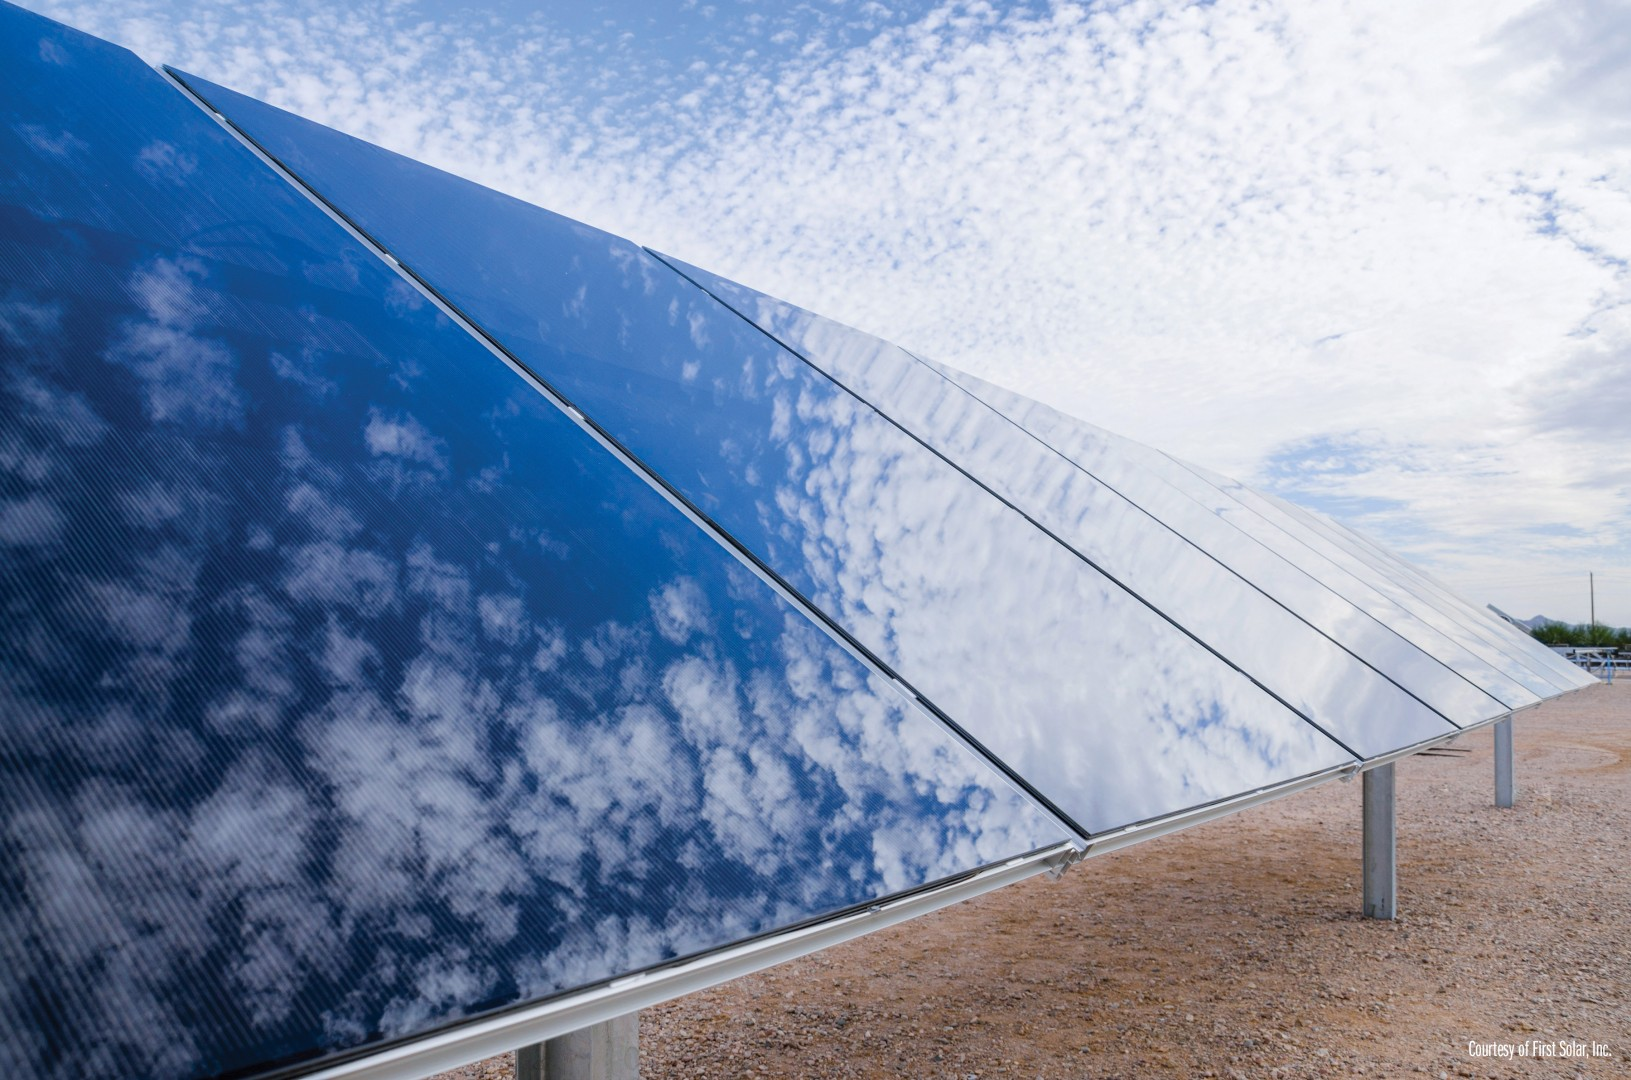 All three projects are scheduled to reach substantial completion by the end of the fourth quarter of 2019. Image: First Solar